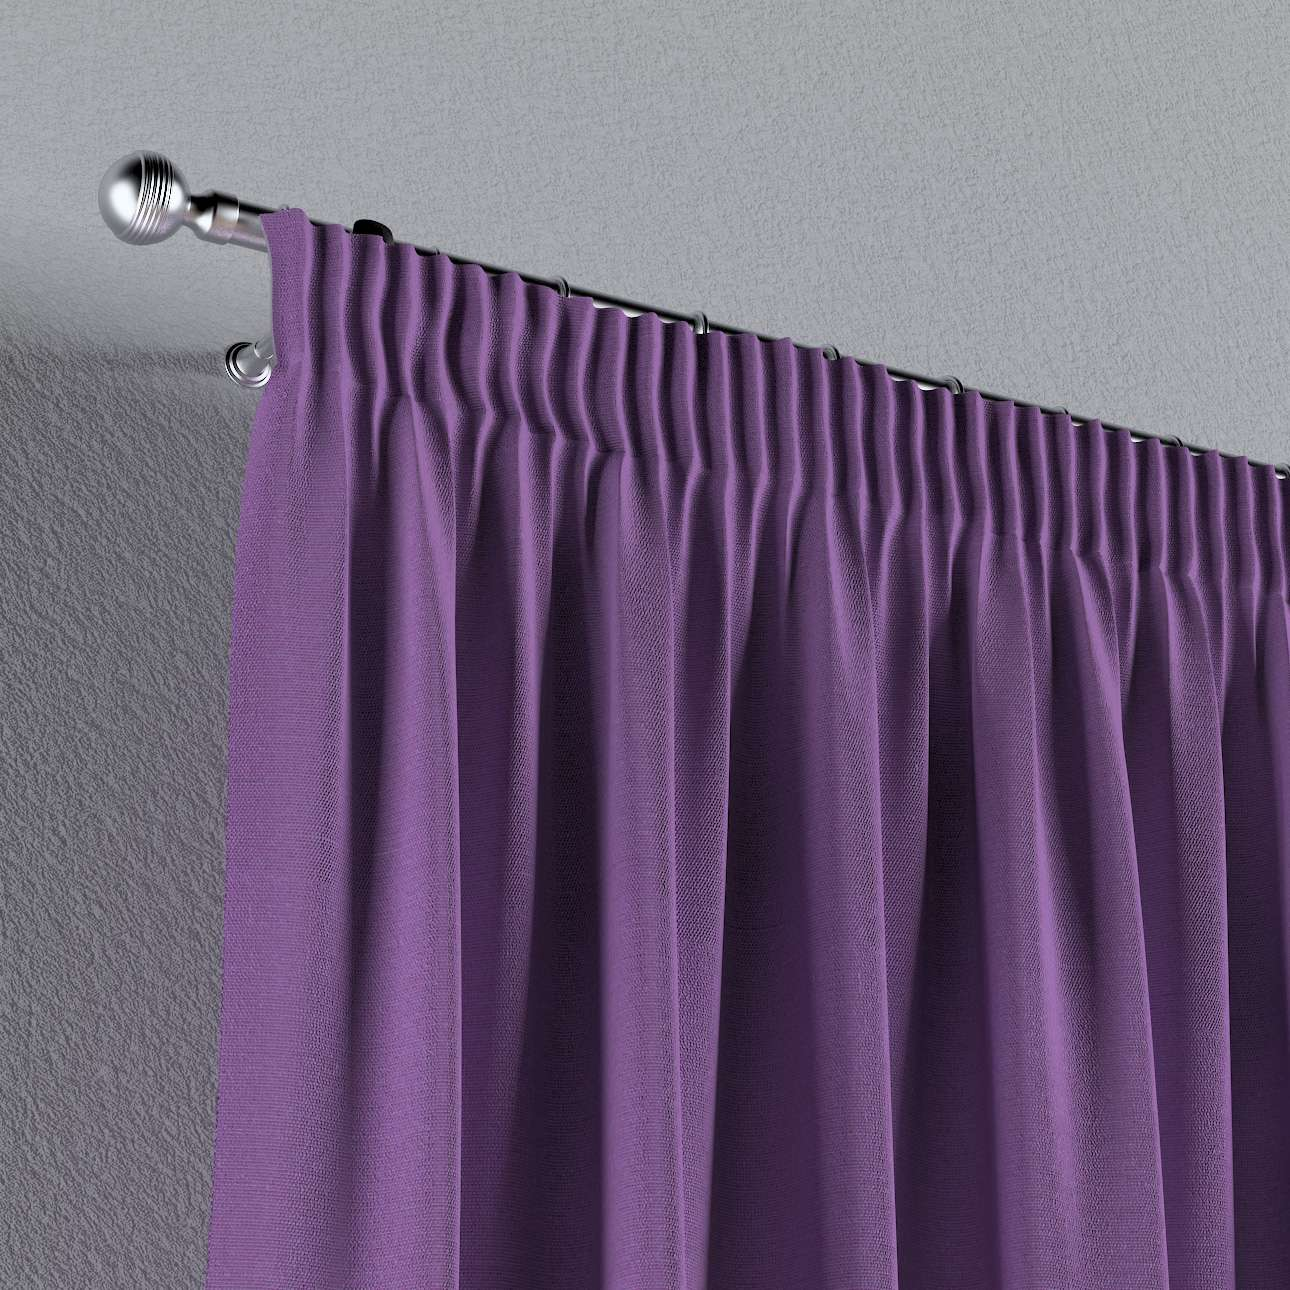 Pencil pleat curtains 130 x 260 cm (51 x 102 inch) in collection Loneta , fabric: 133-19